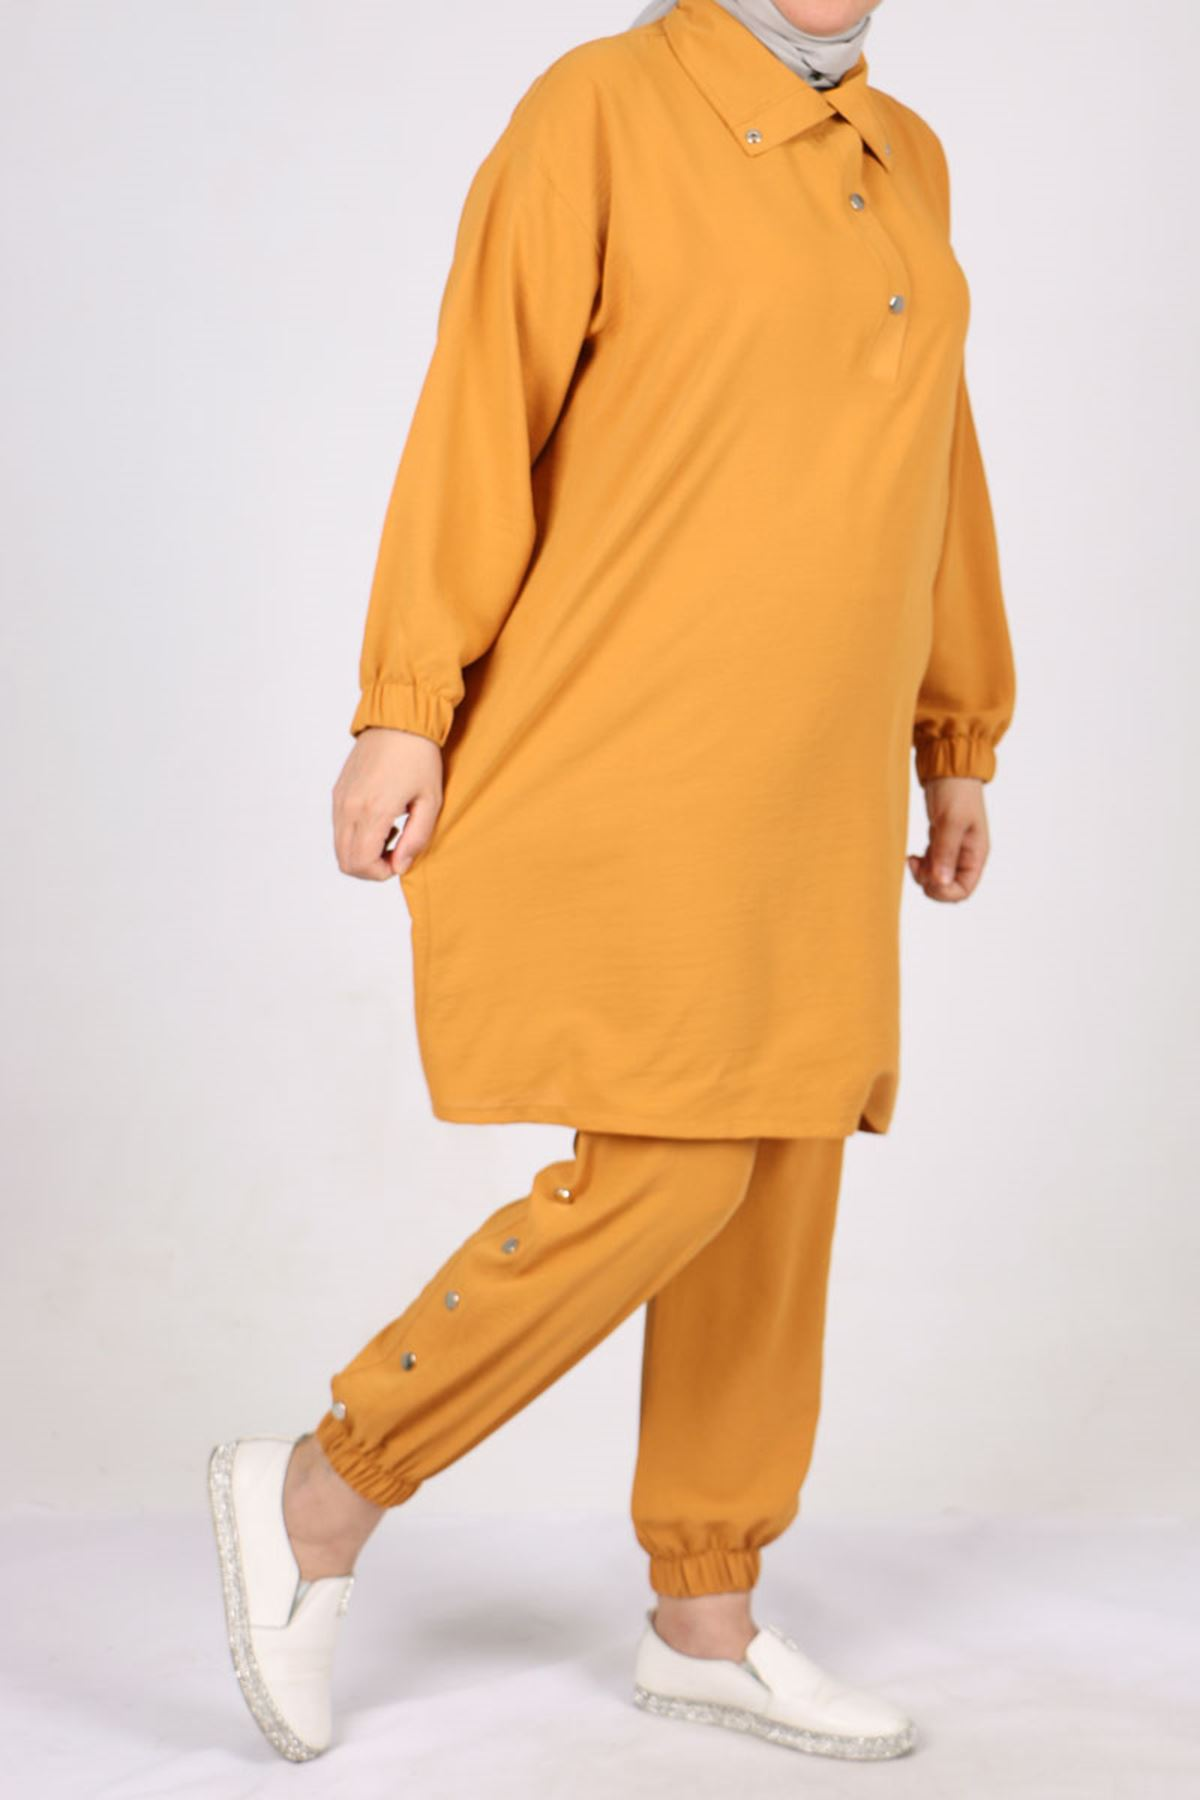 7699 Plus Size Snap Fastener Two Piece Set with Pants - Mustard